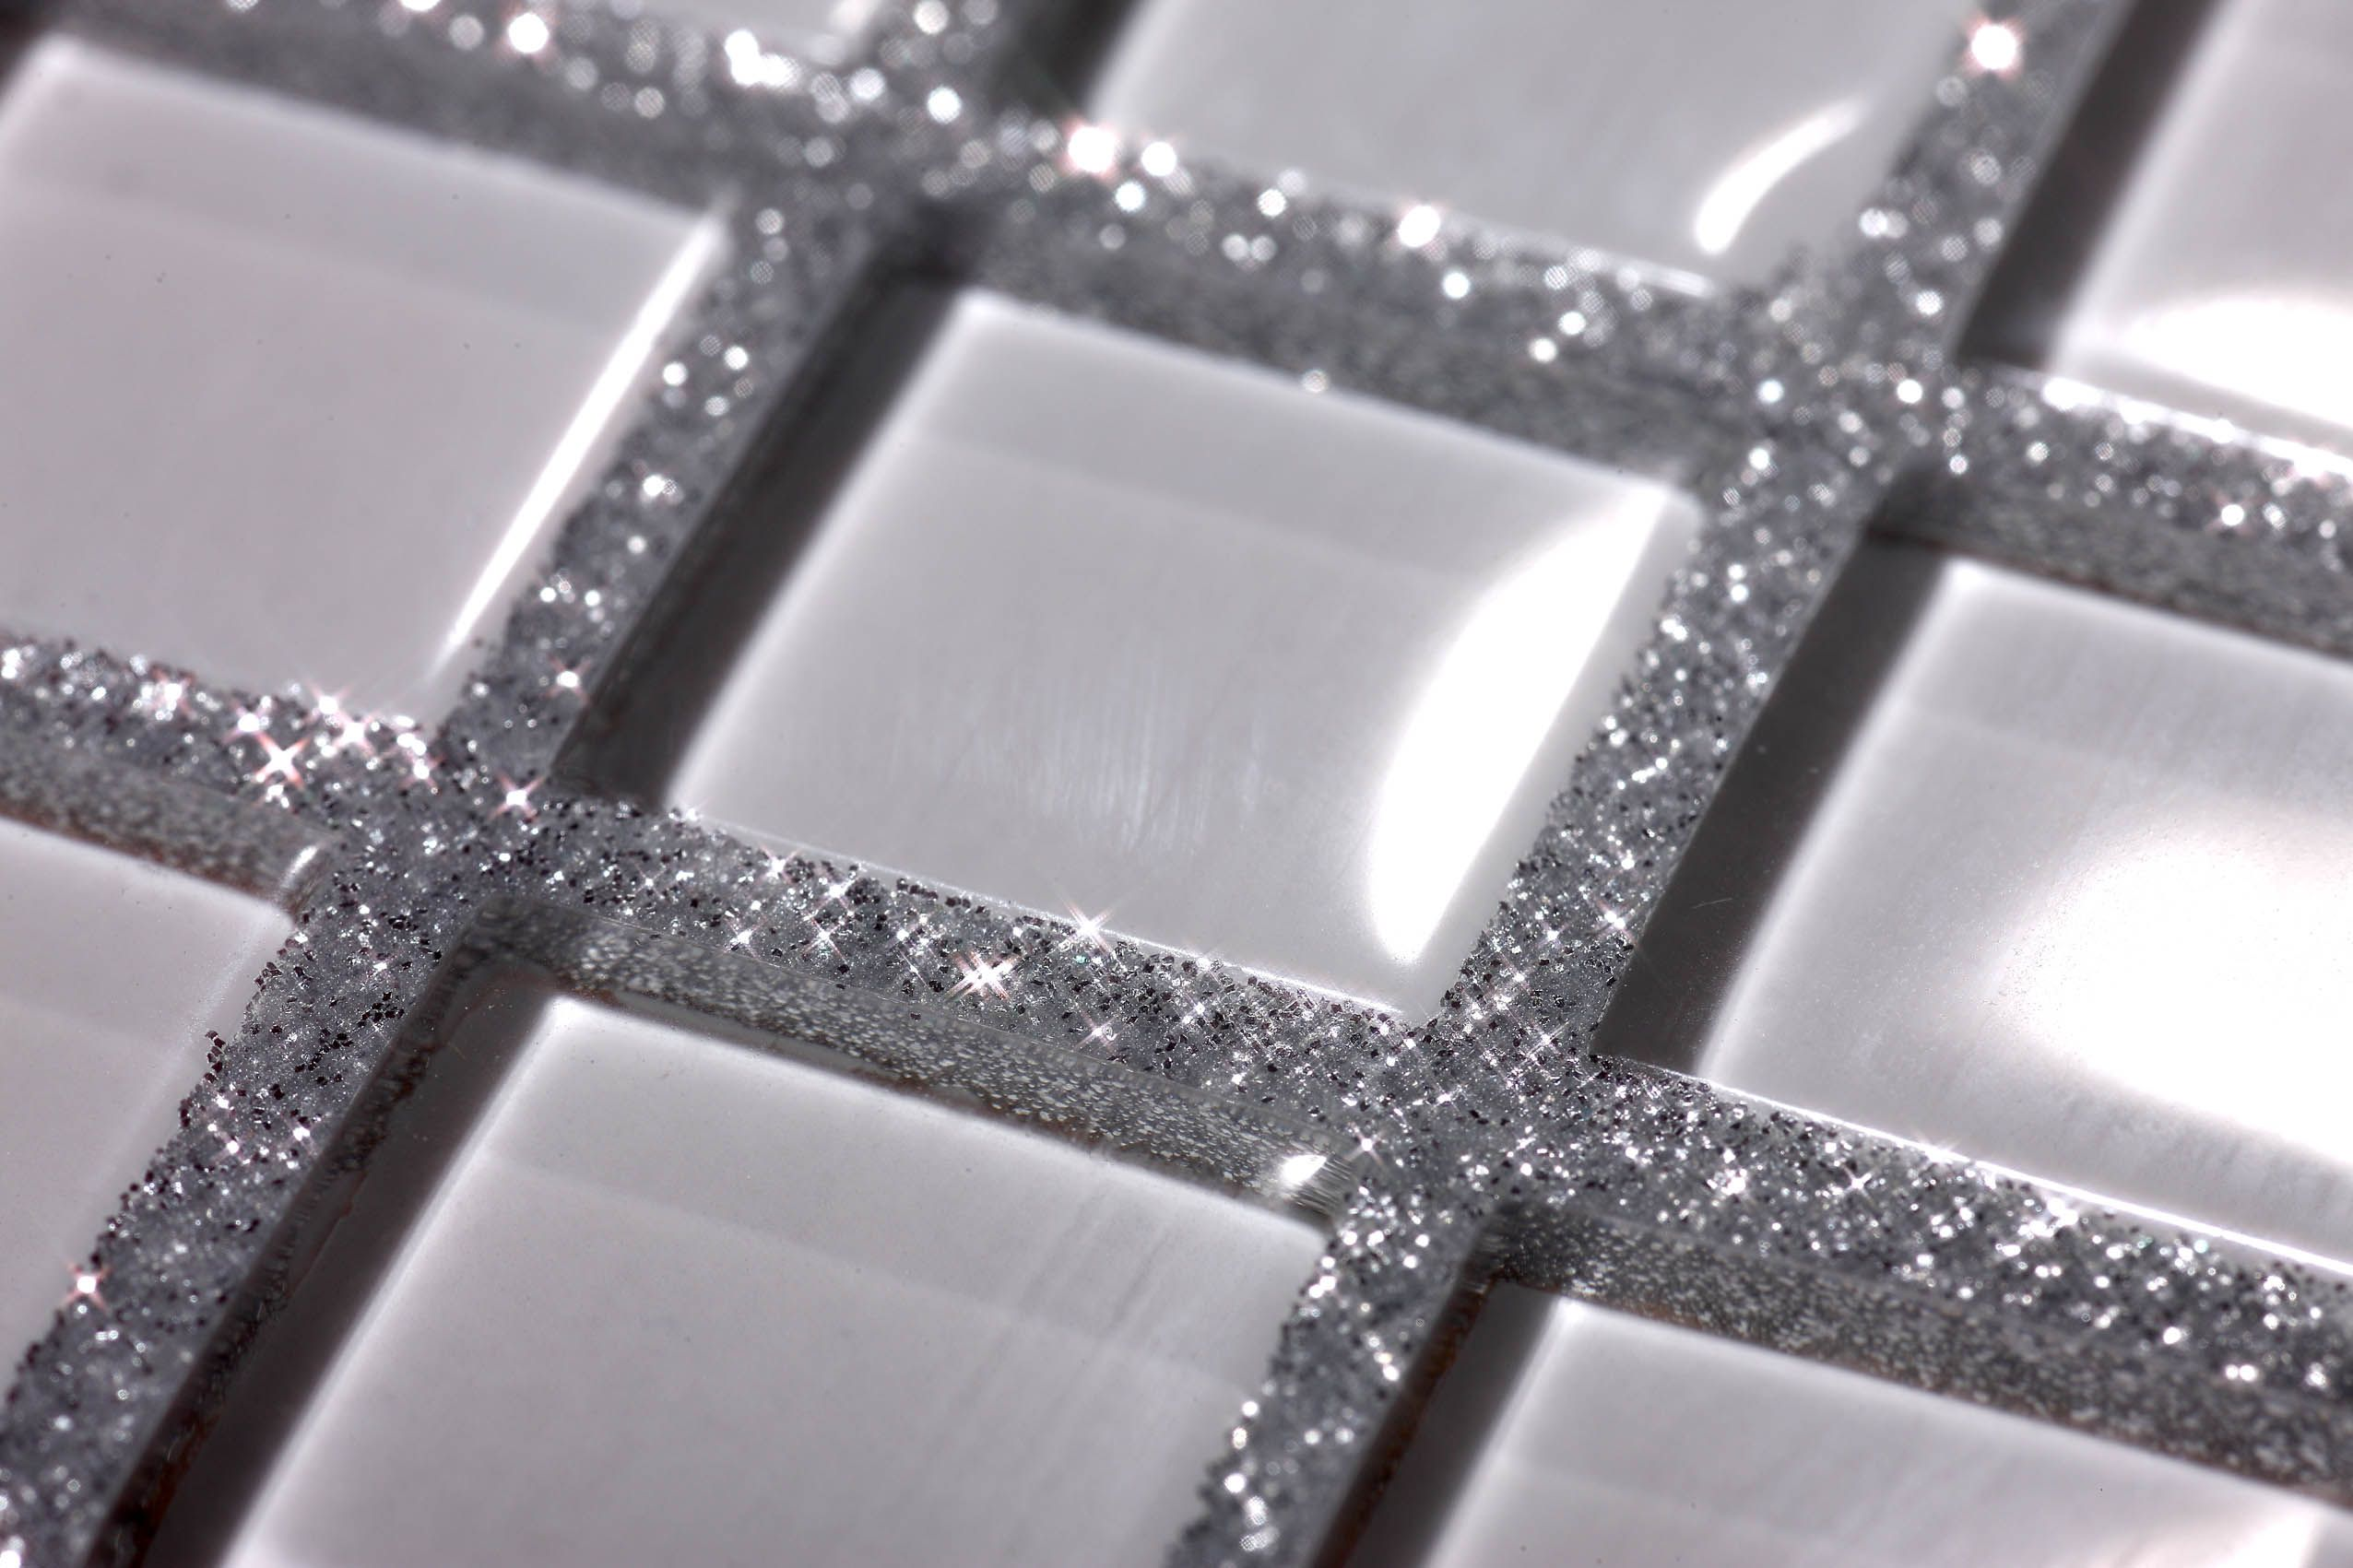 I Rather The Like The Idea Of Glitter In The Tile Grout